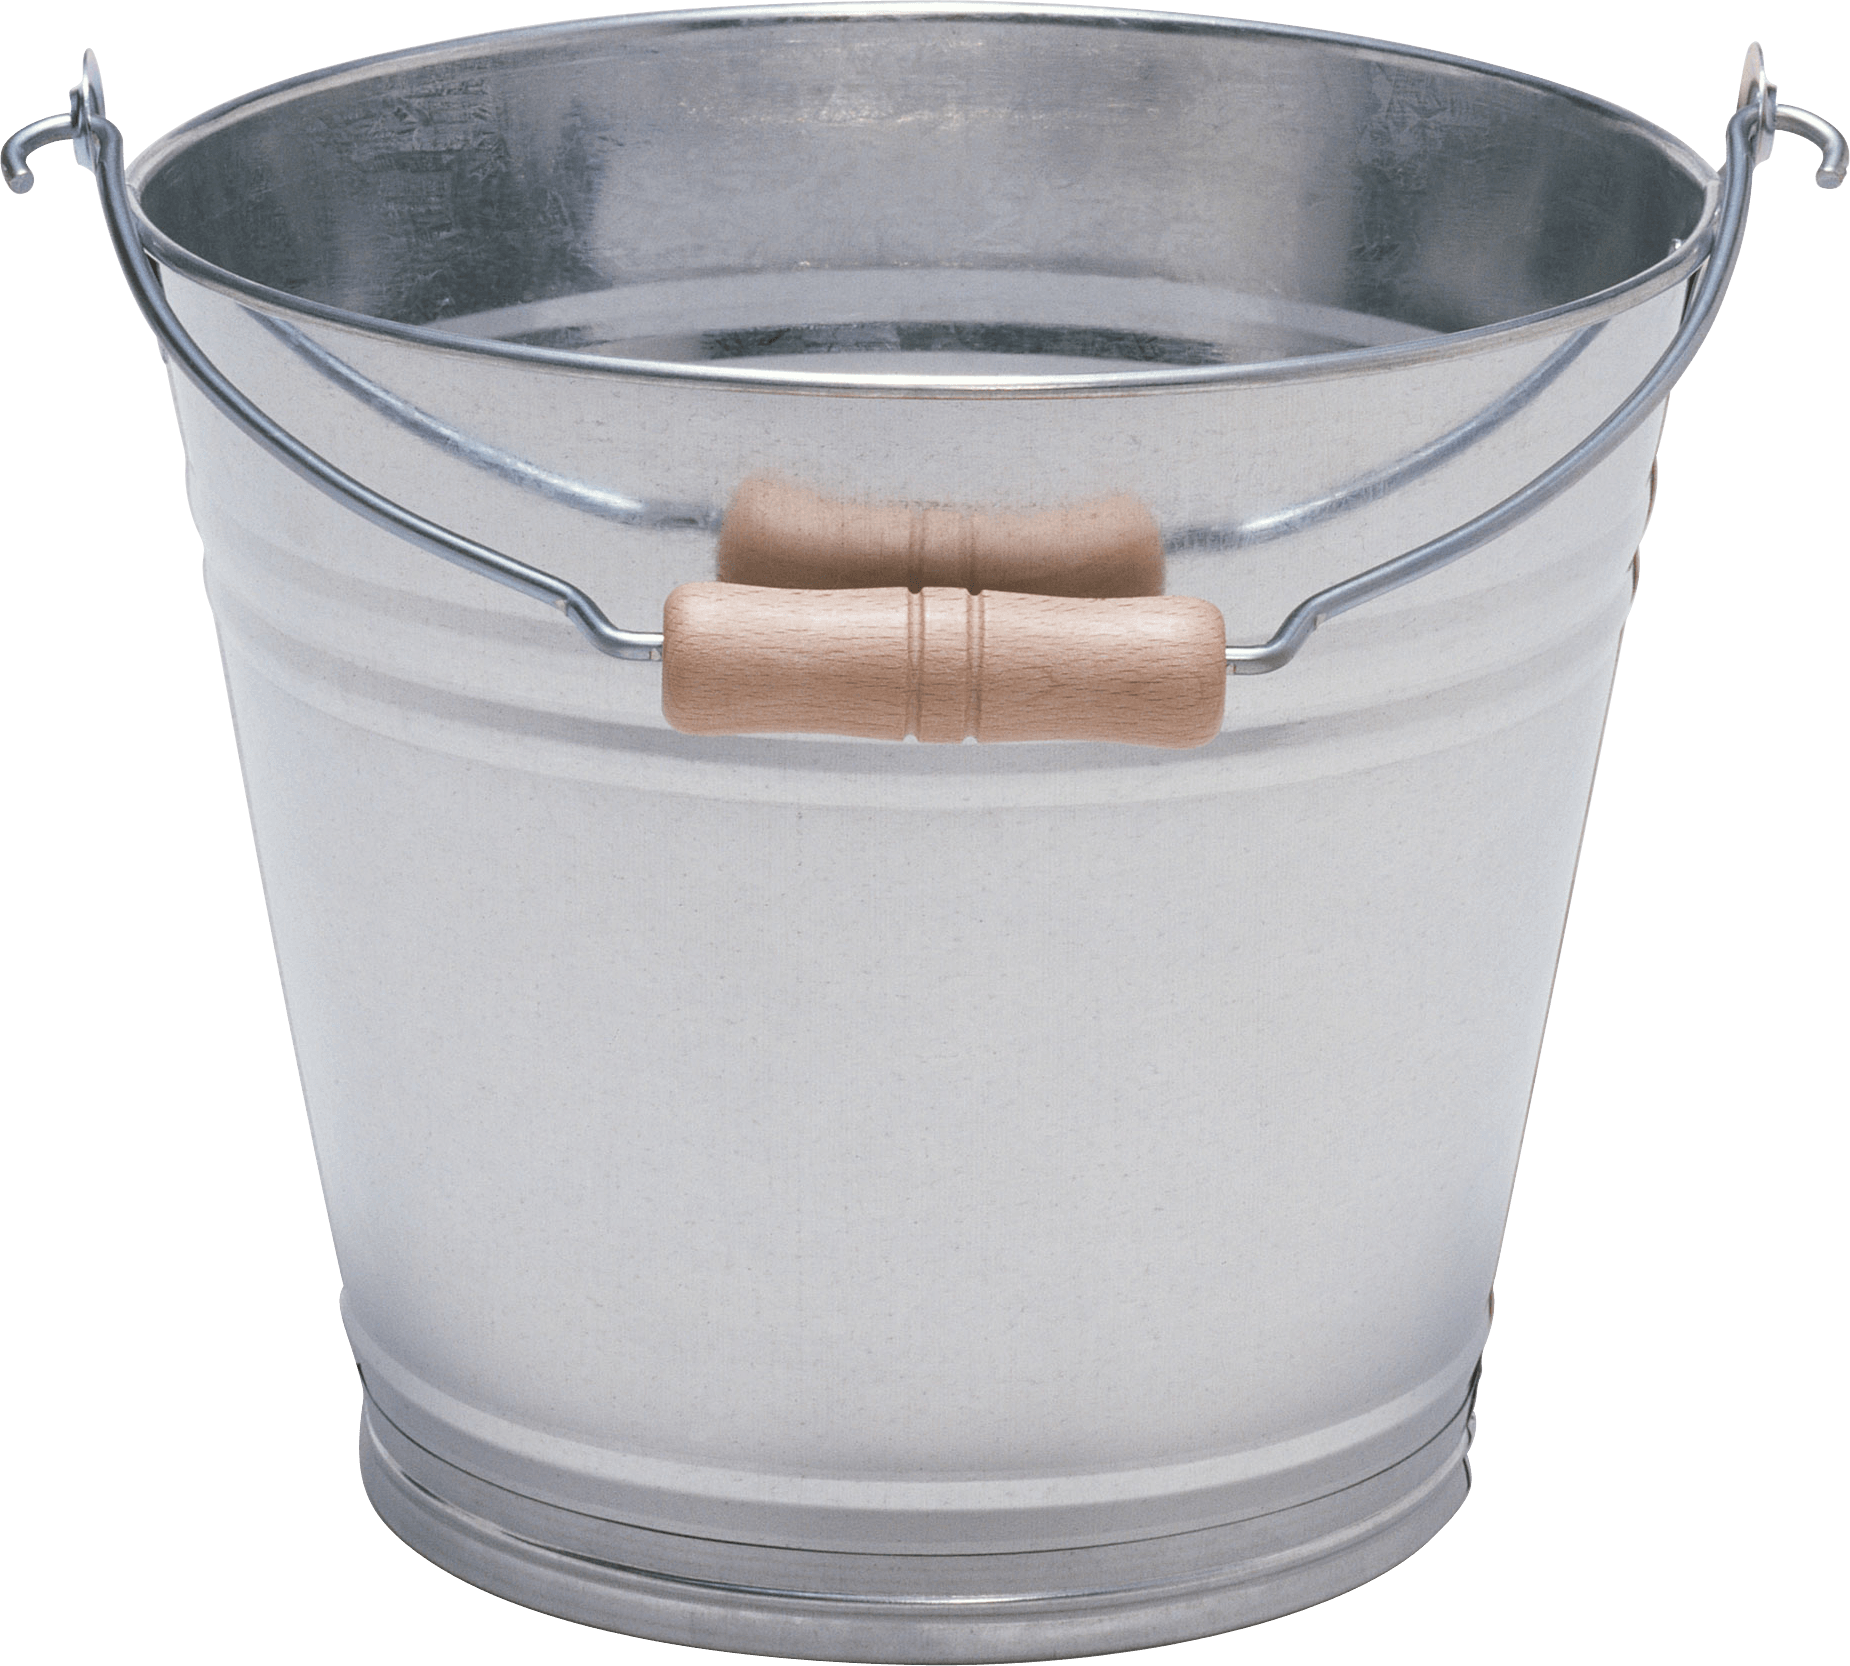 Iron Bucket Png Image PNG Image